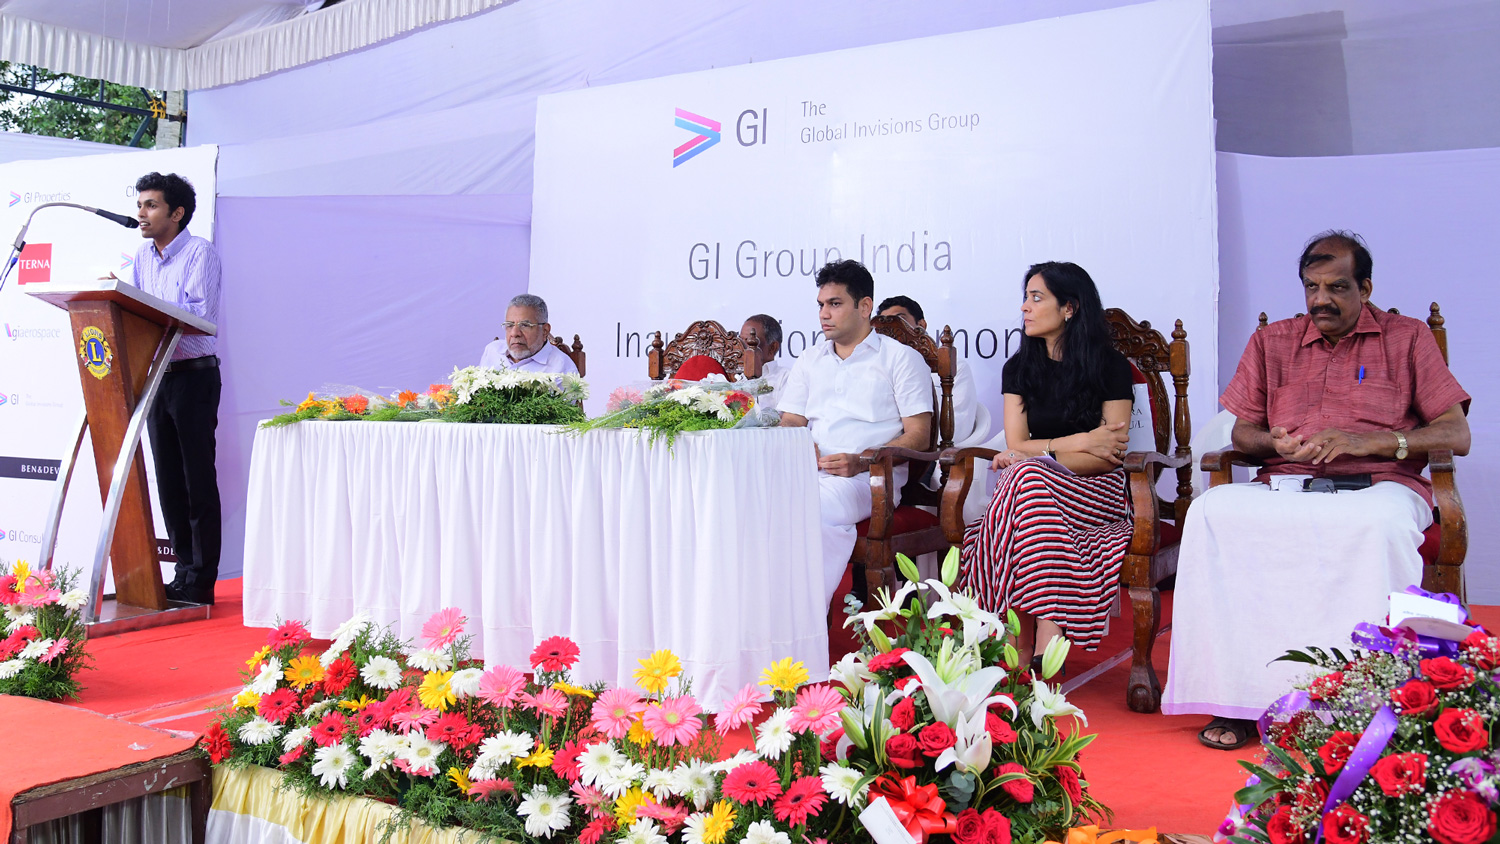 GI Group India office inaugurated by M.L.A Hibi Eden in Kochi